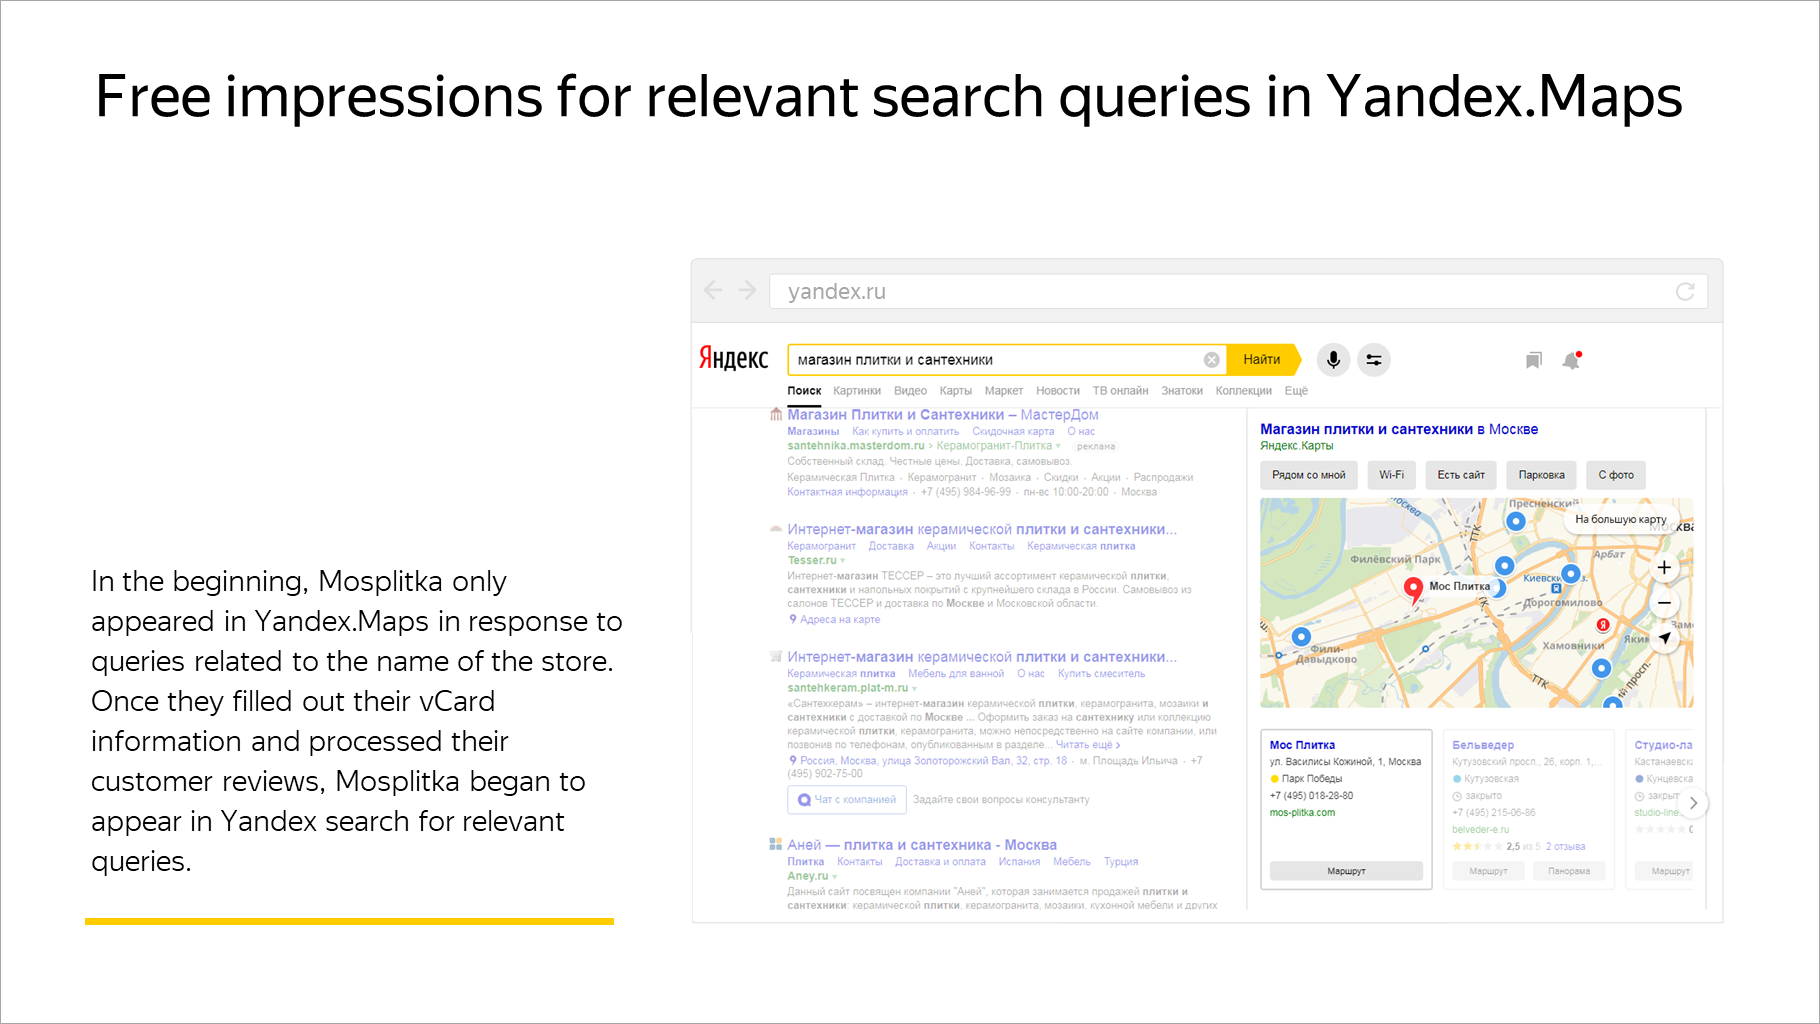 Free impressions for relevant search queries in Yandex.Maps